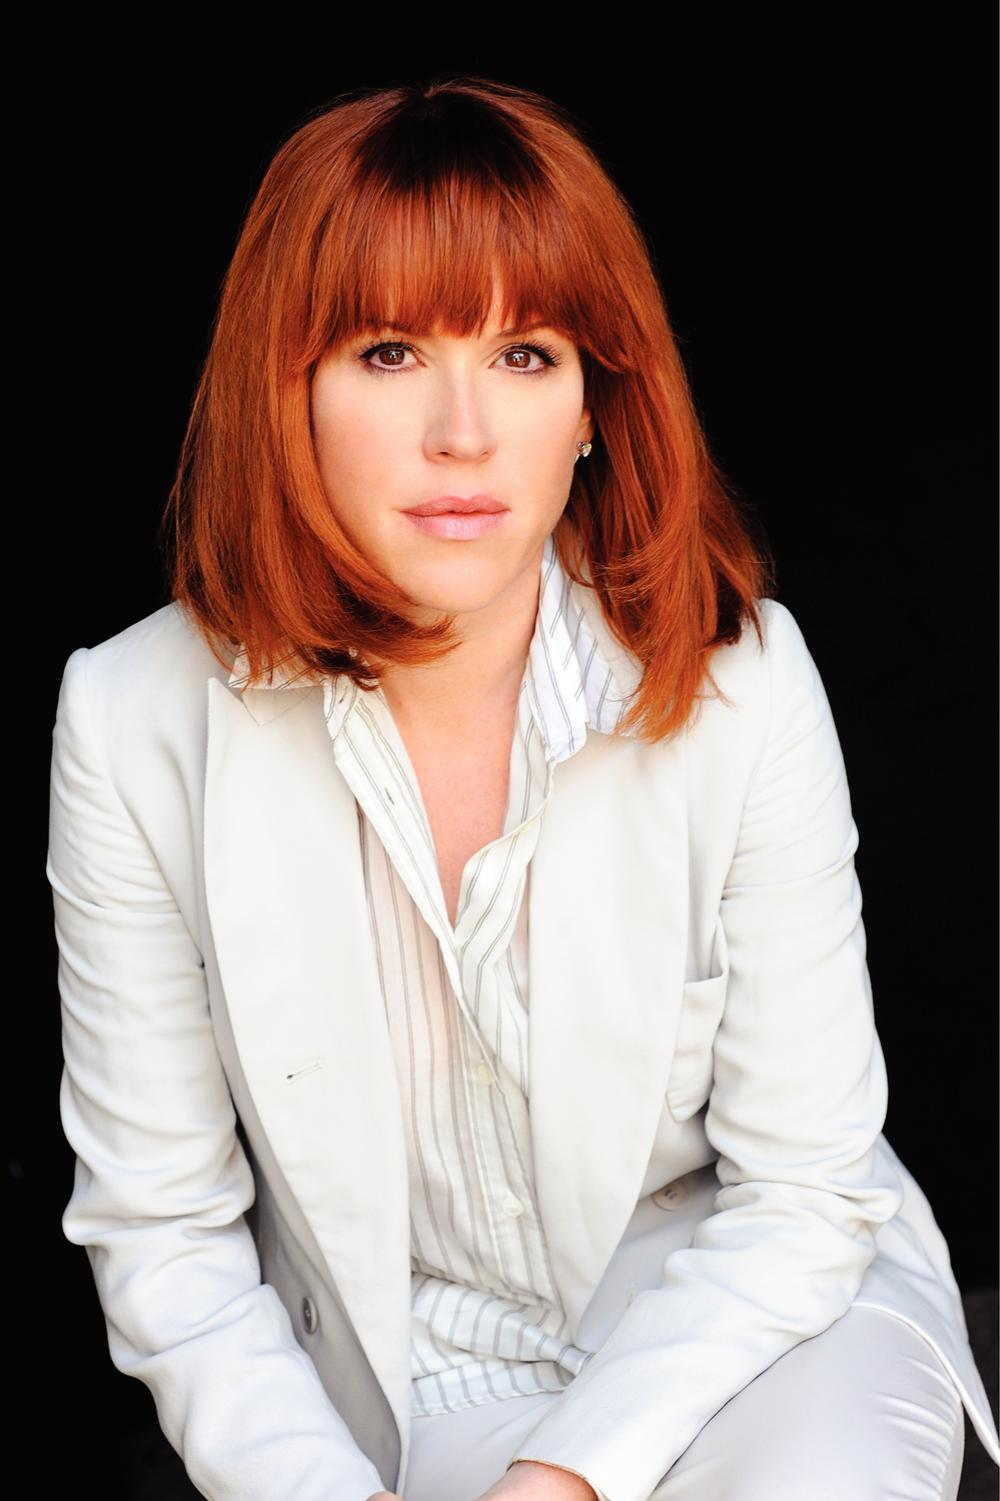 Actress and author Molly Ringwald. (Photo: Fergus Greer)